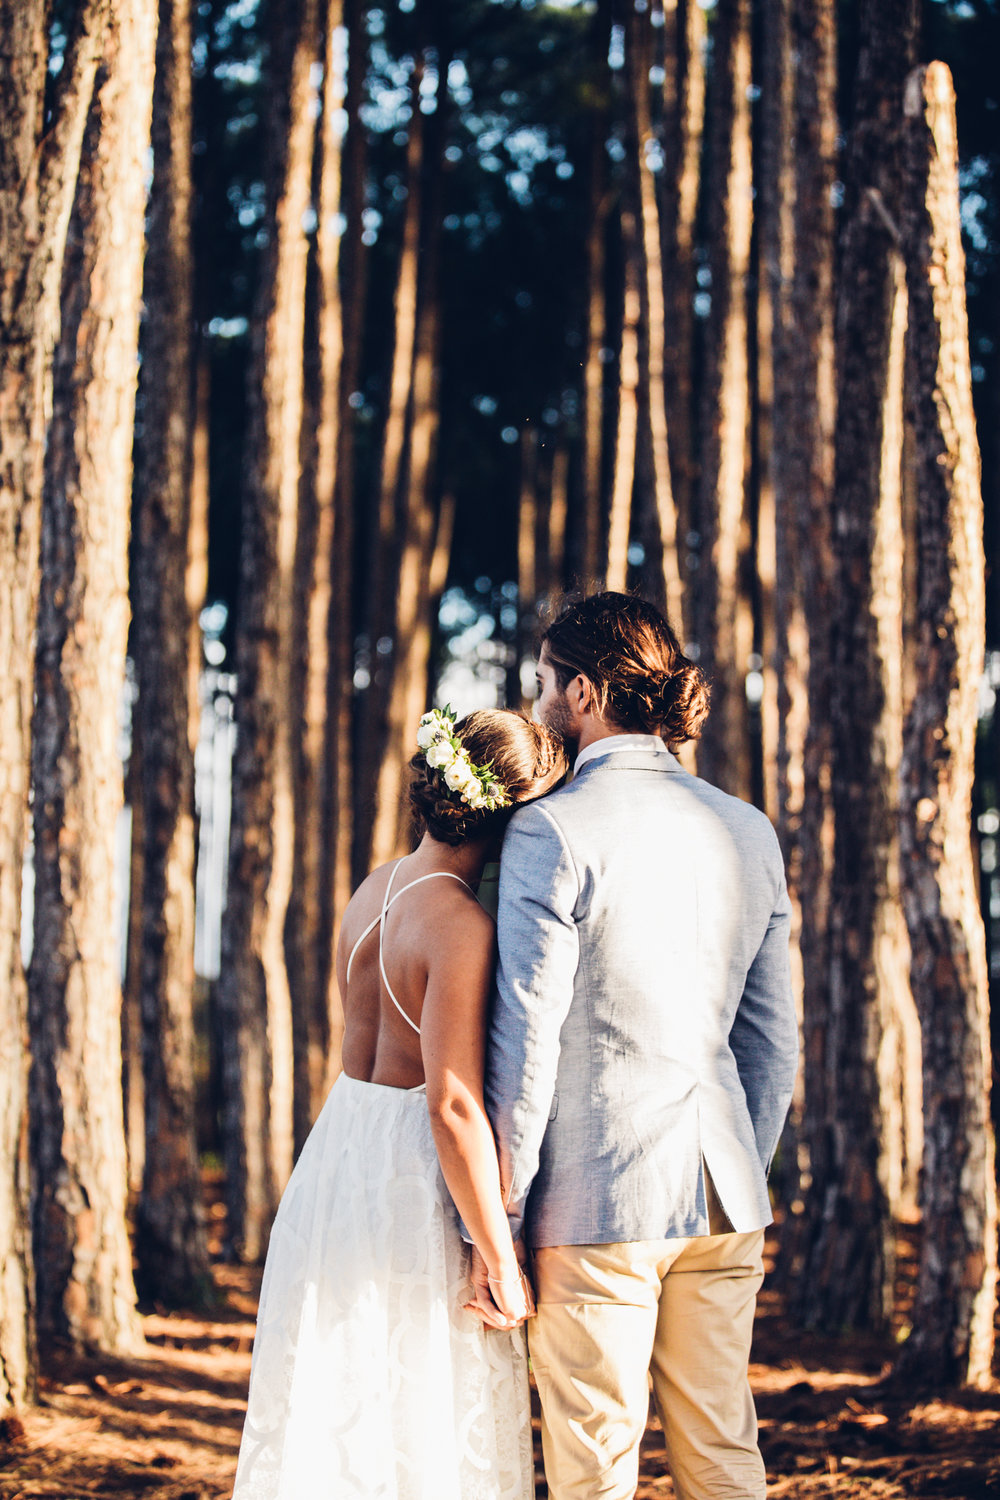 Danny & Karleigh by Get Together Photography small 250.jpg